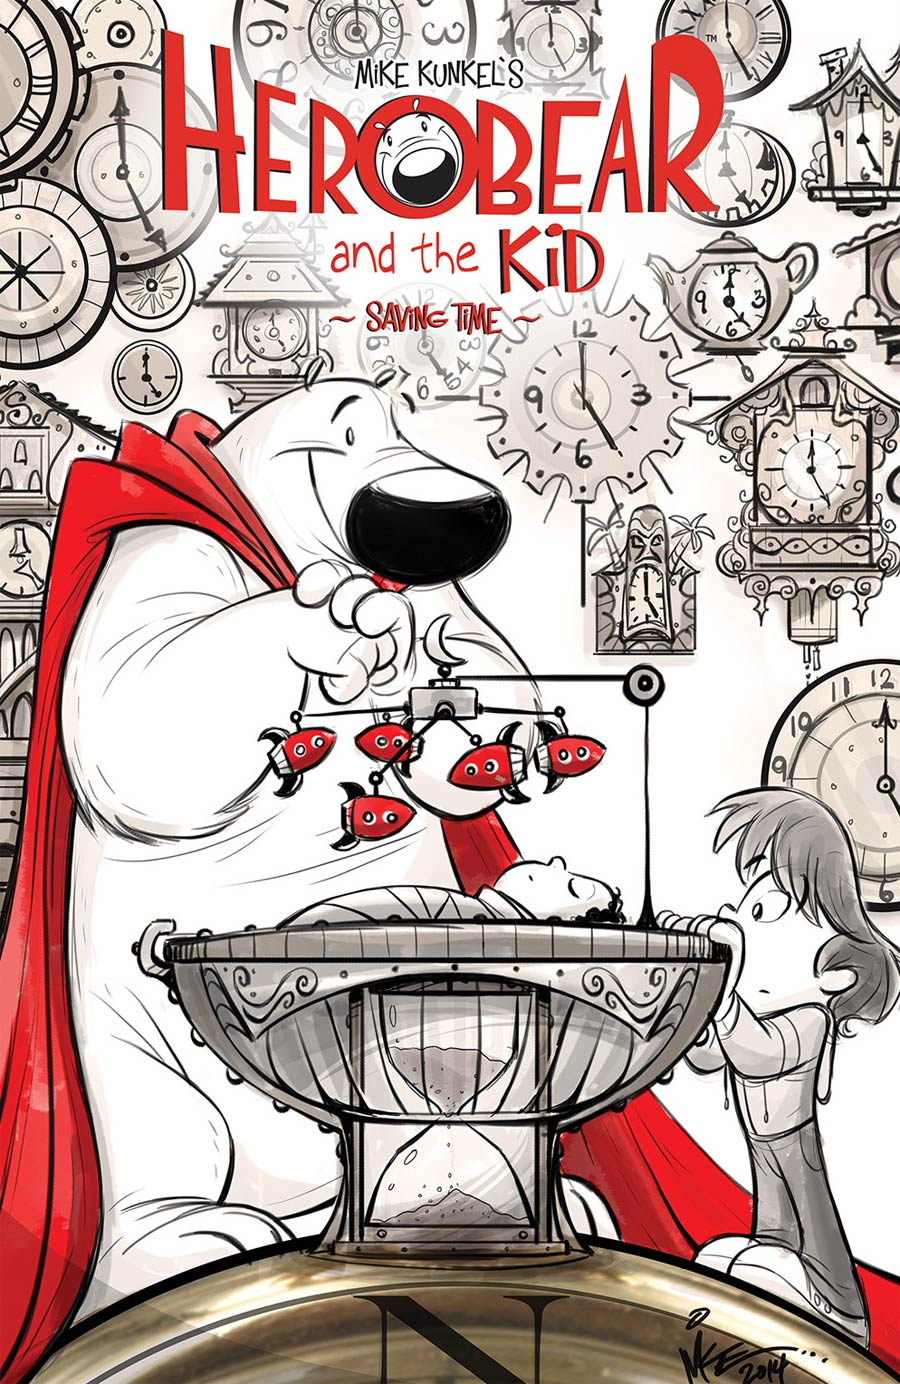 Herobear And The Kid Saving Time #1 Cover A Regular Mike Kunkel Cover